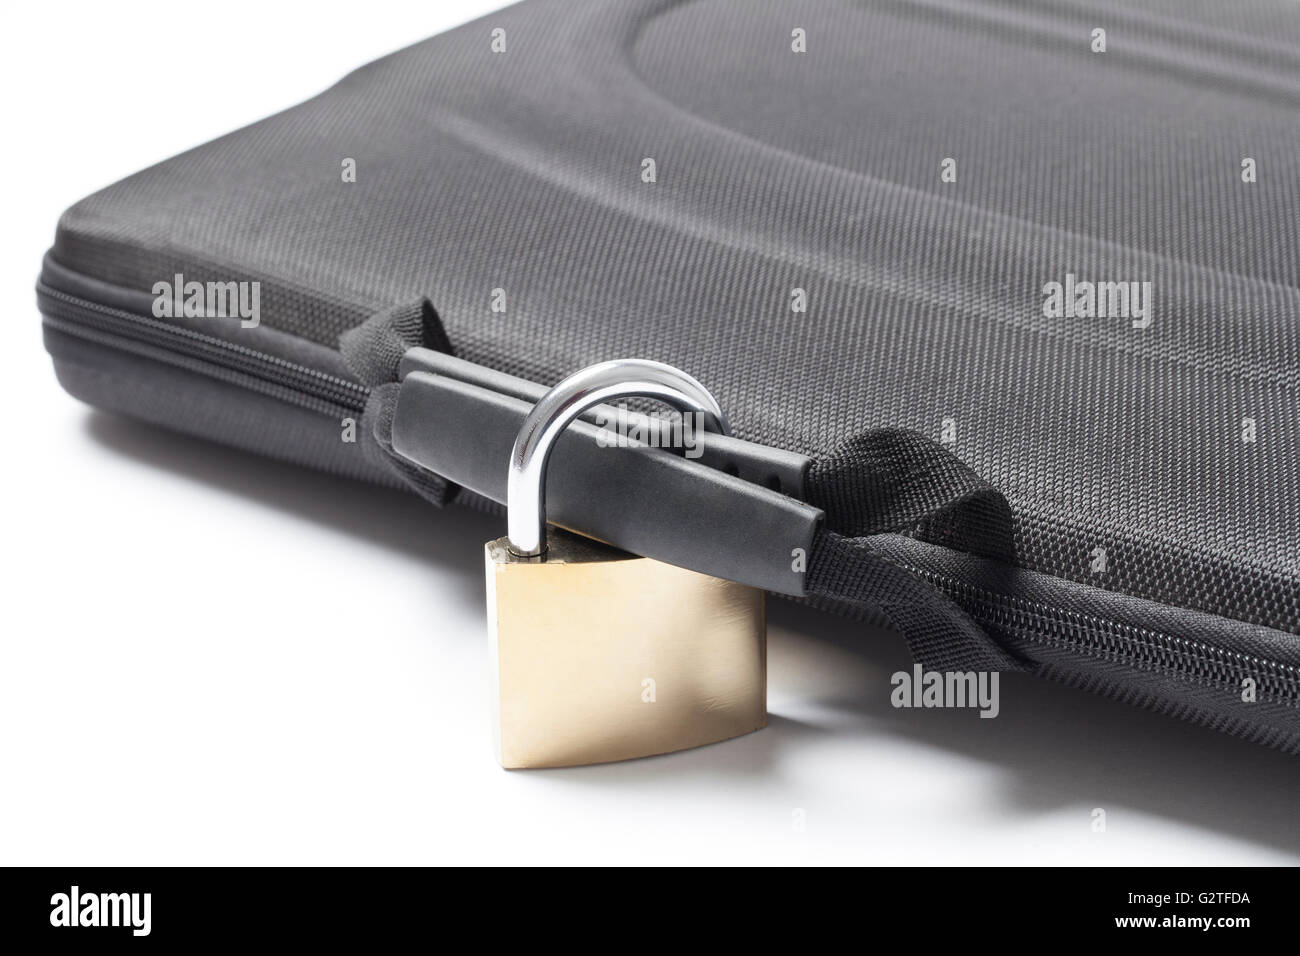 Closed and locked with a metal padlock black briefcase isolated on white background. - Stock Image